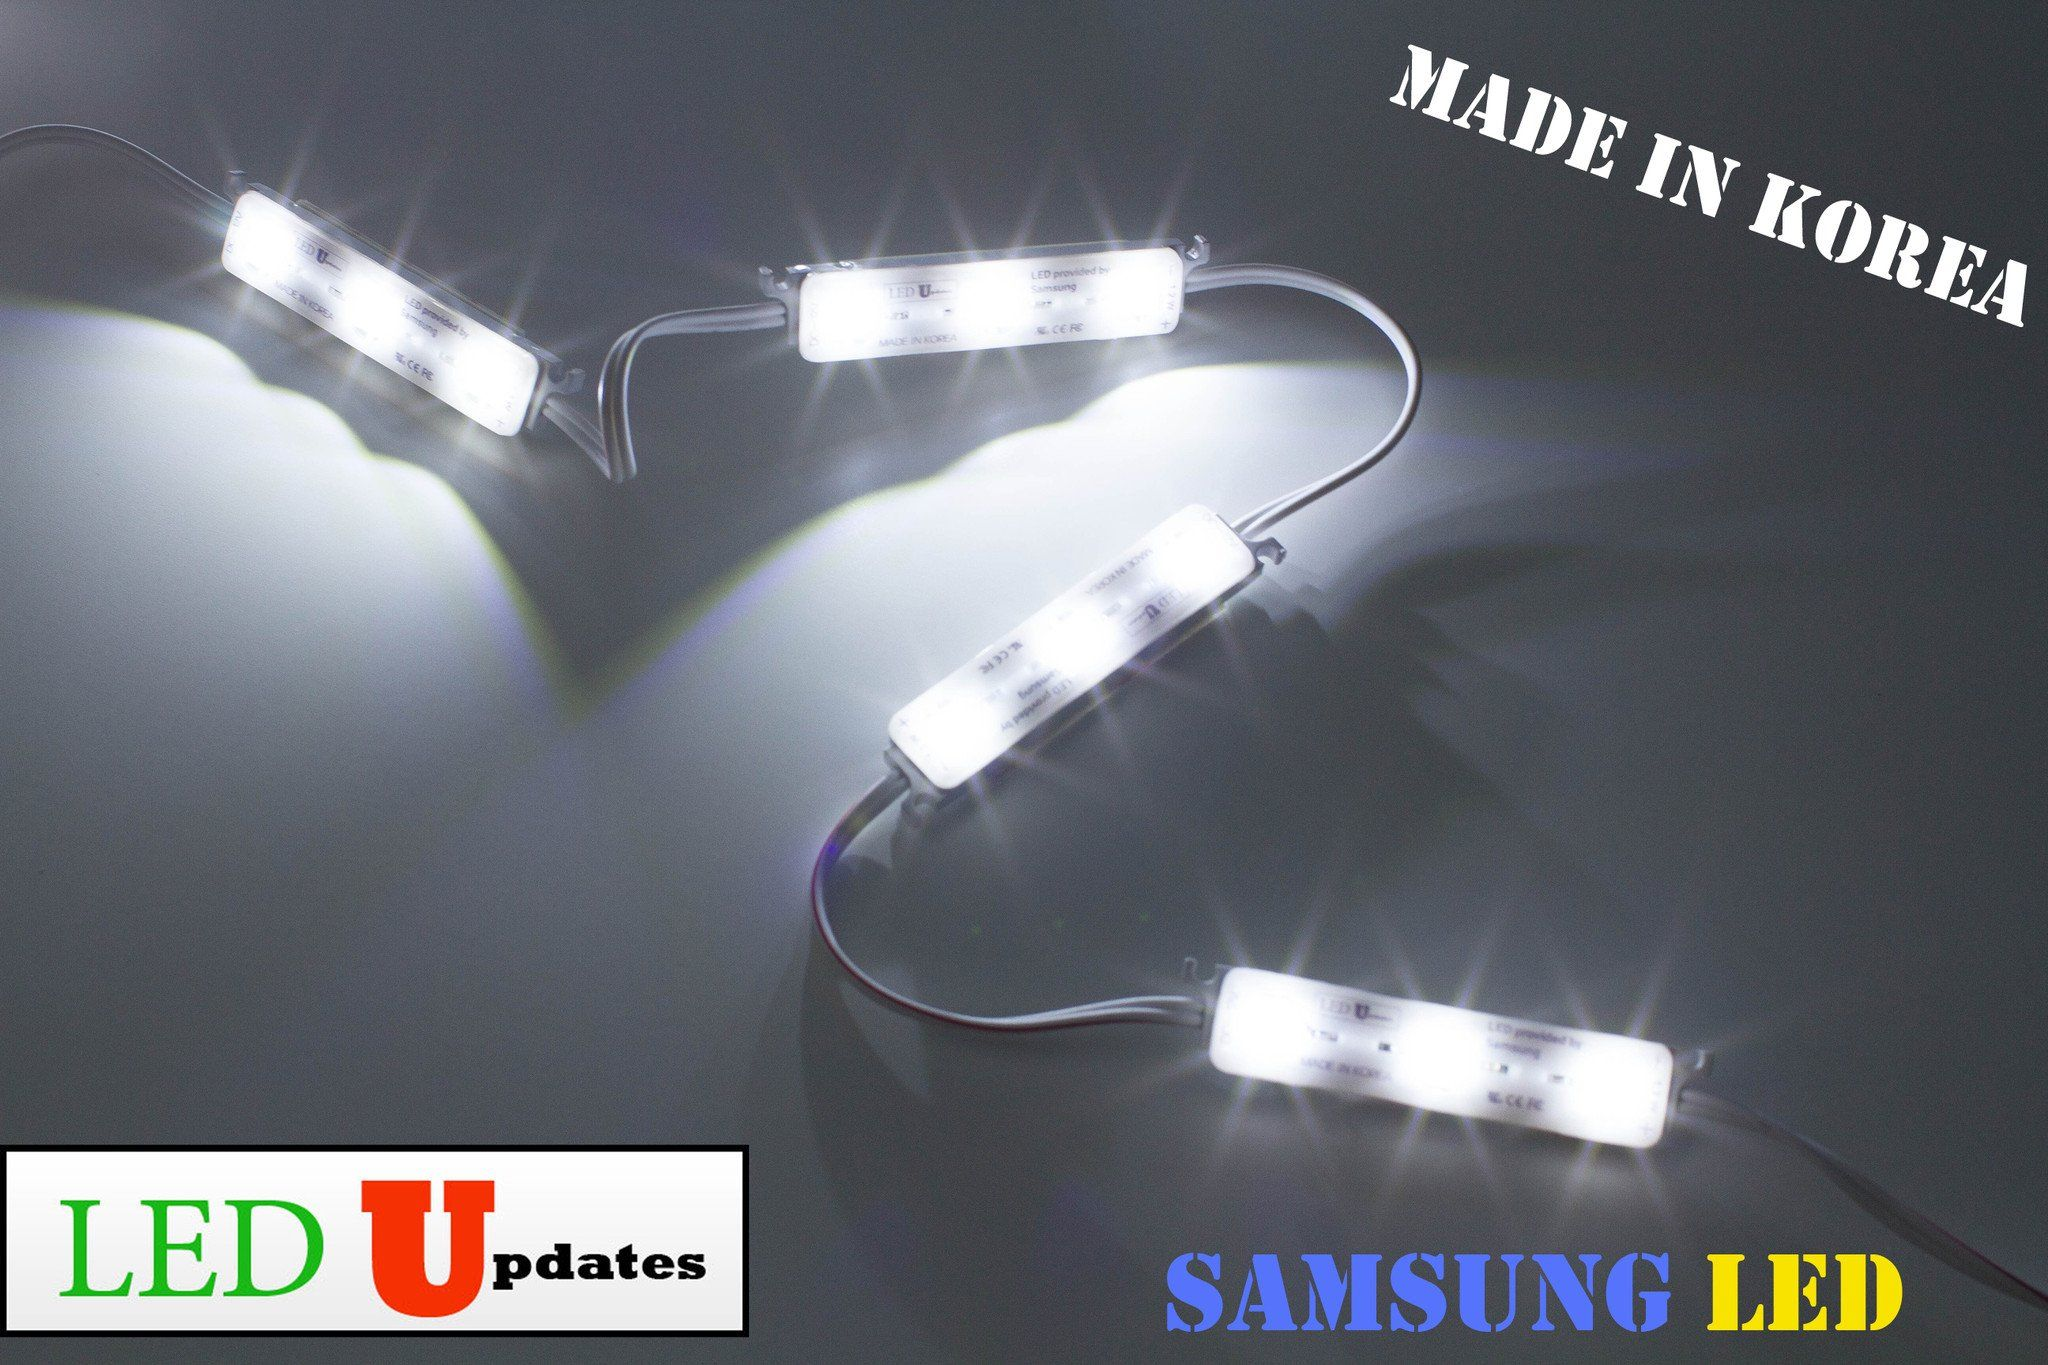 Super Bright K2835 Series Samsung Led Light Modules Made